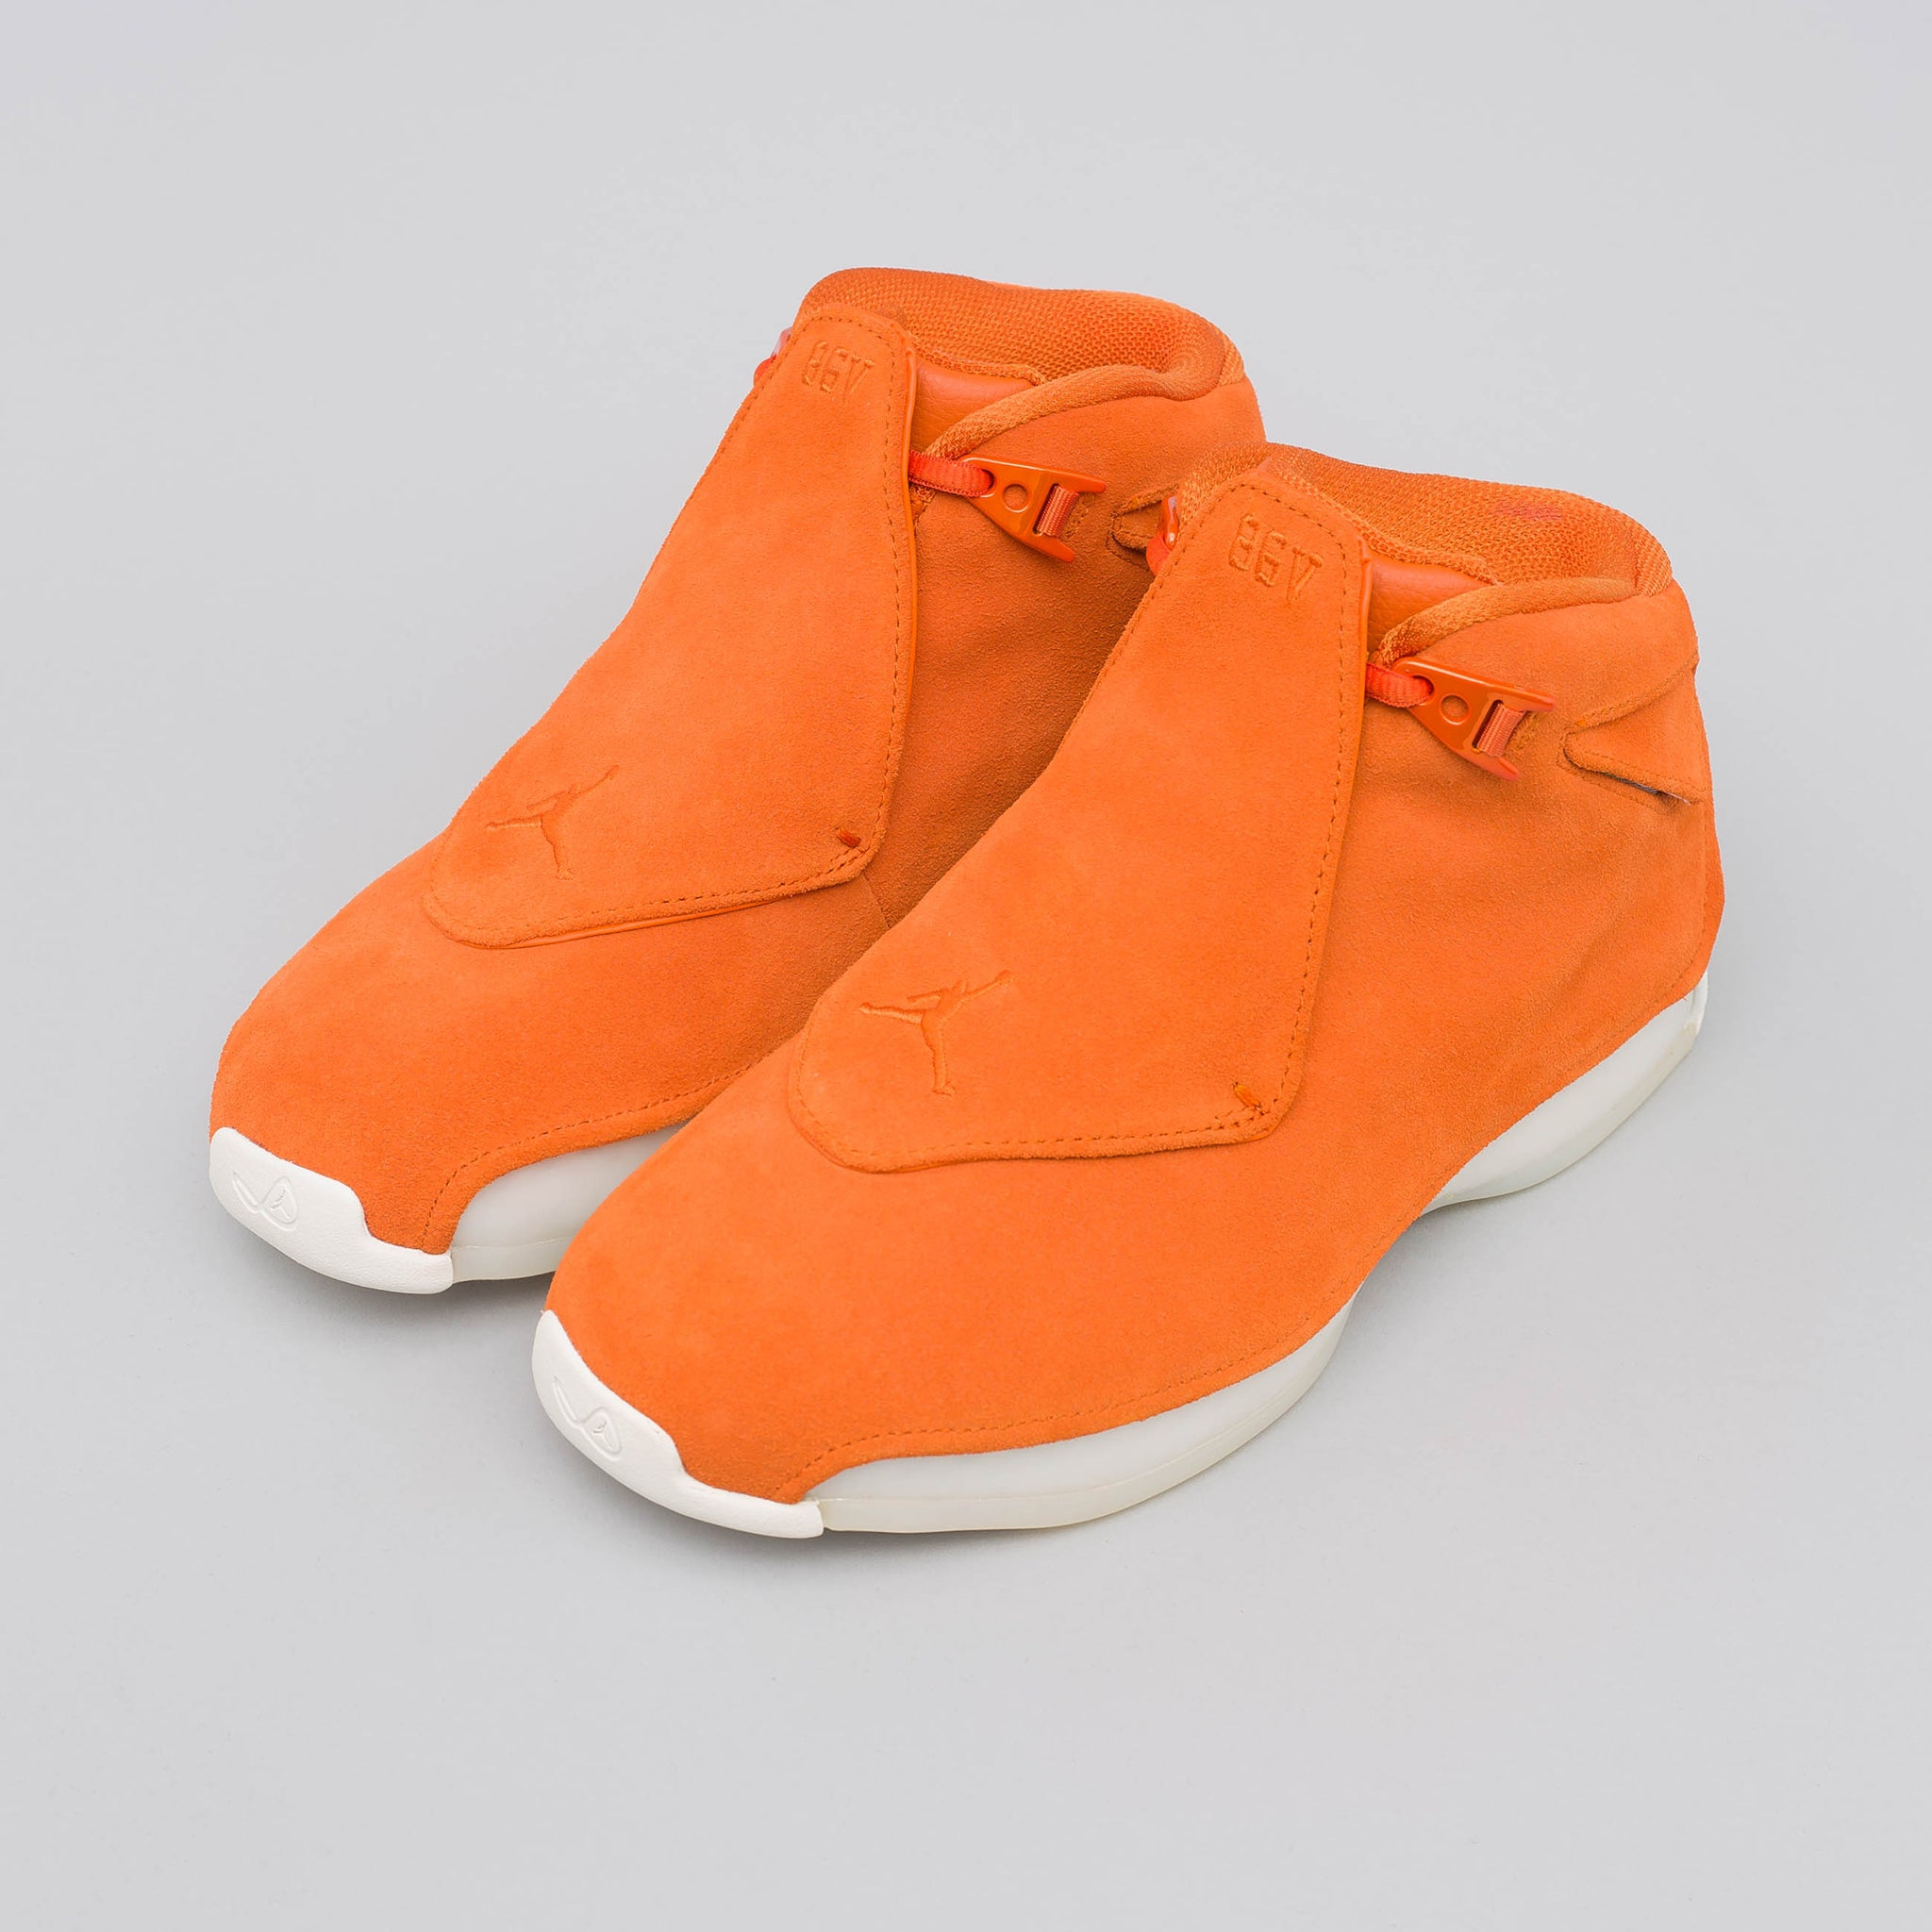 38391fcc9ce2 ... new arrivals air jordan 18 retro in campfire orange b0468 11a34